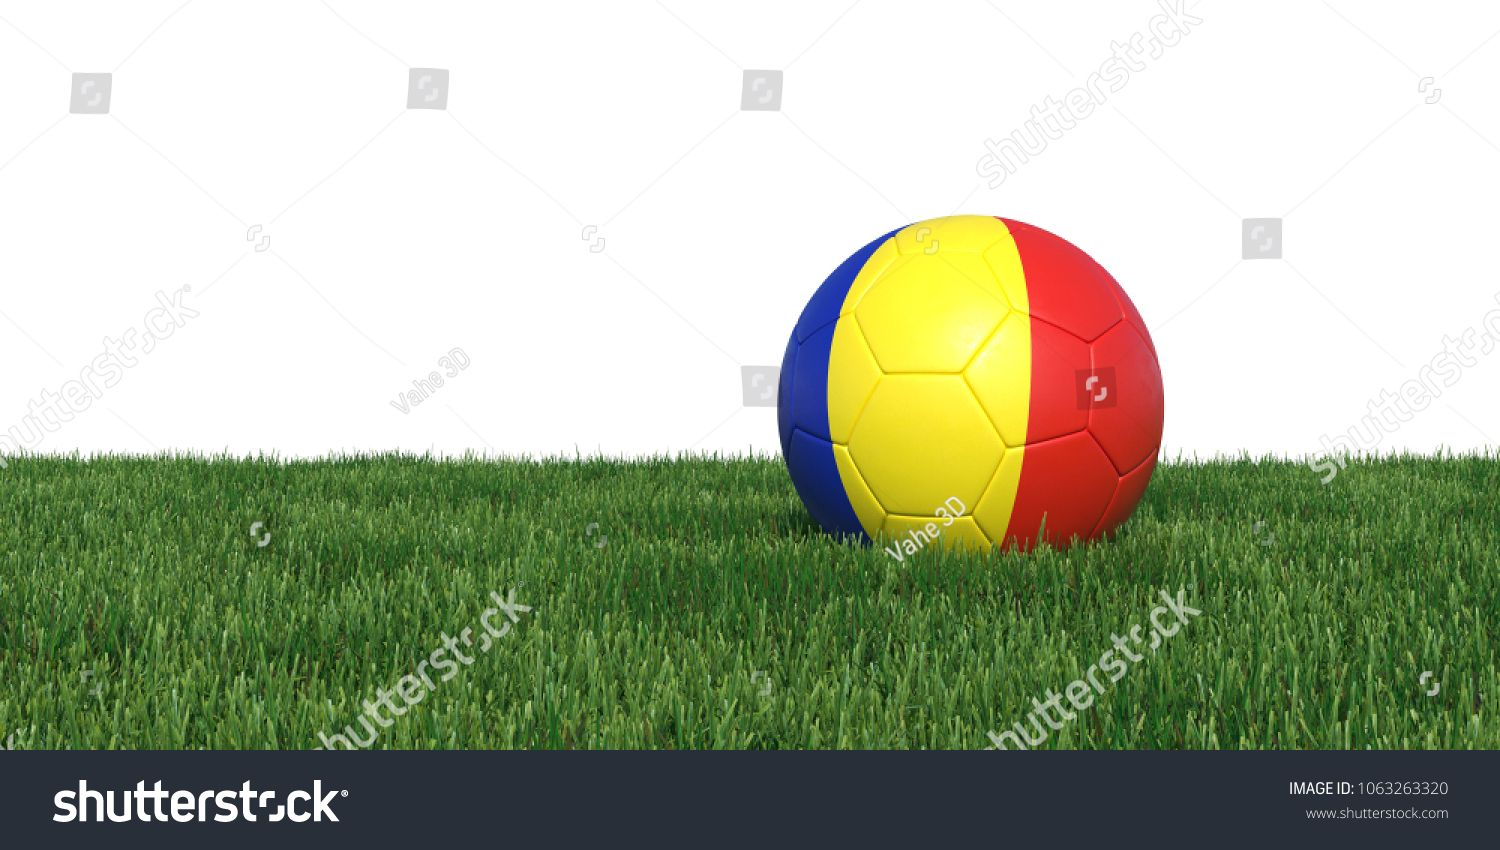 Download Romania Romanian Chad Chadian Flag Soccer Ball Lying In Grass Isolated On White Background 3d Rendering Illustration Photo Editing Stock Photos Fly Fishing